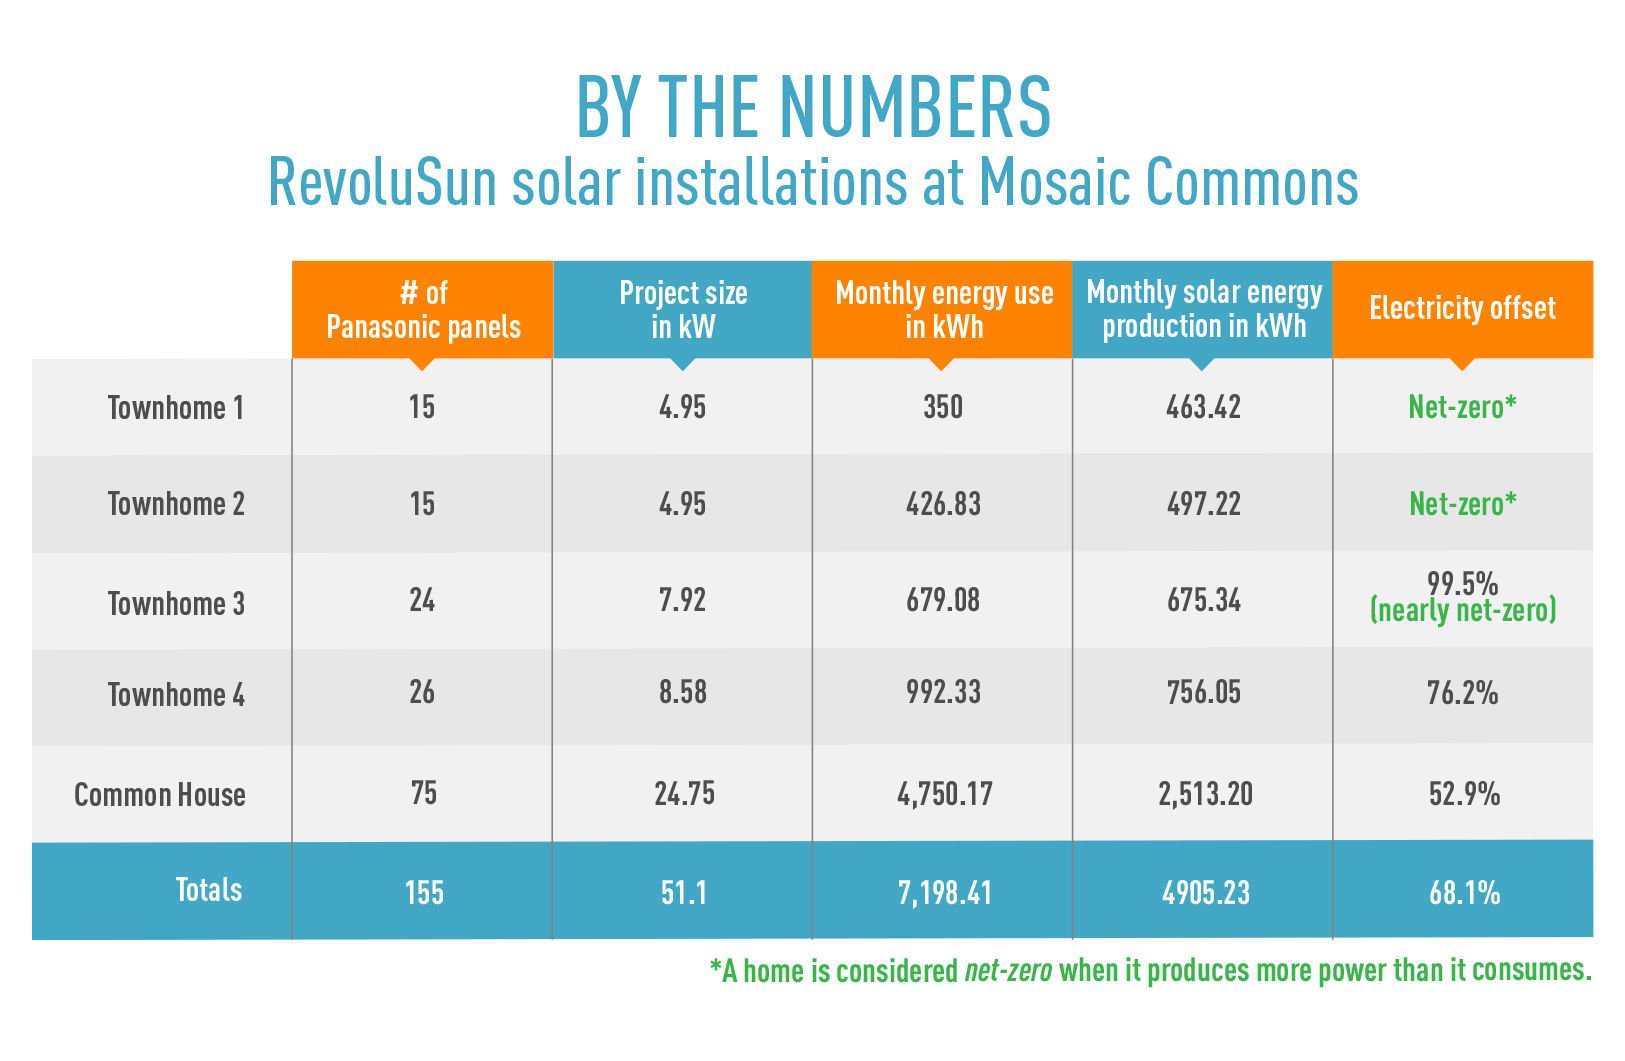 By the numbers: Revolusun solar installations at mosaic commons